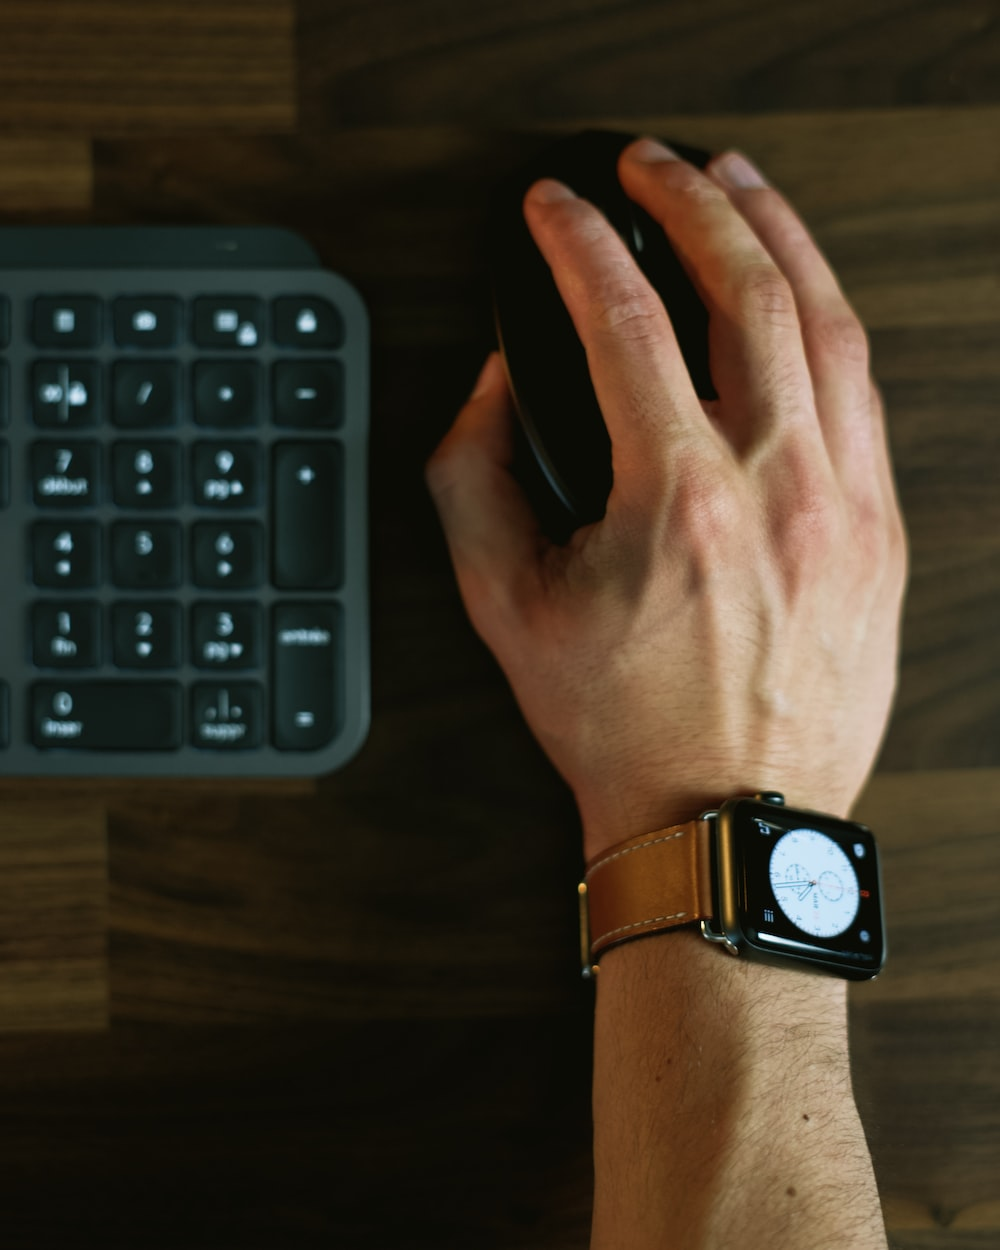 person wearing black and silver apple watch